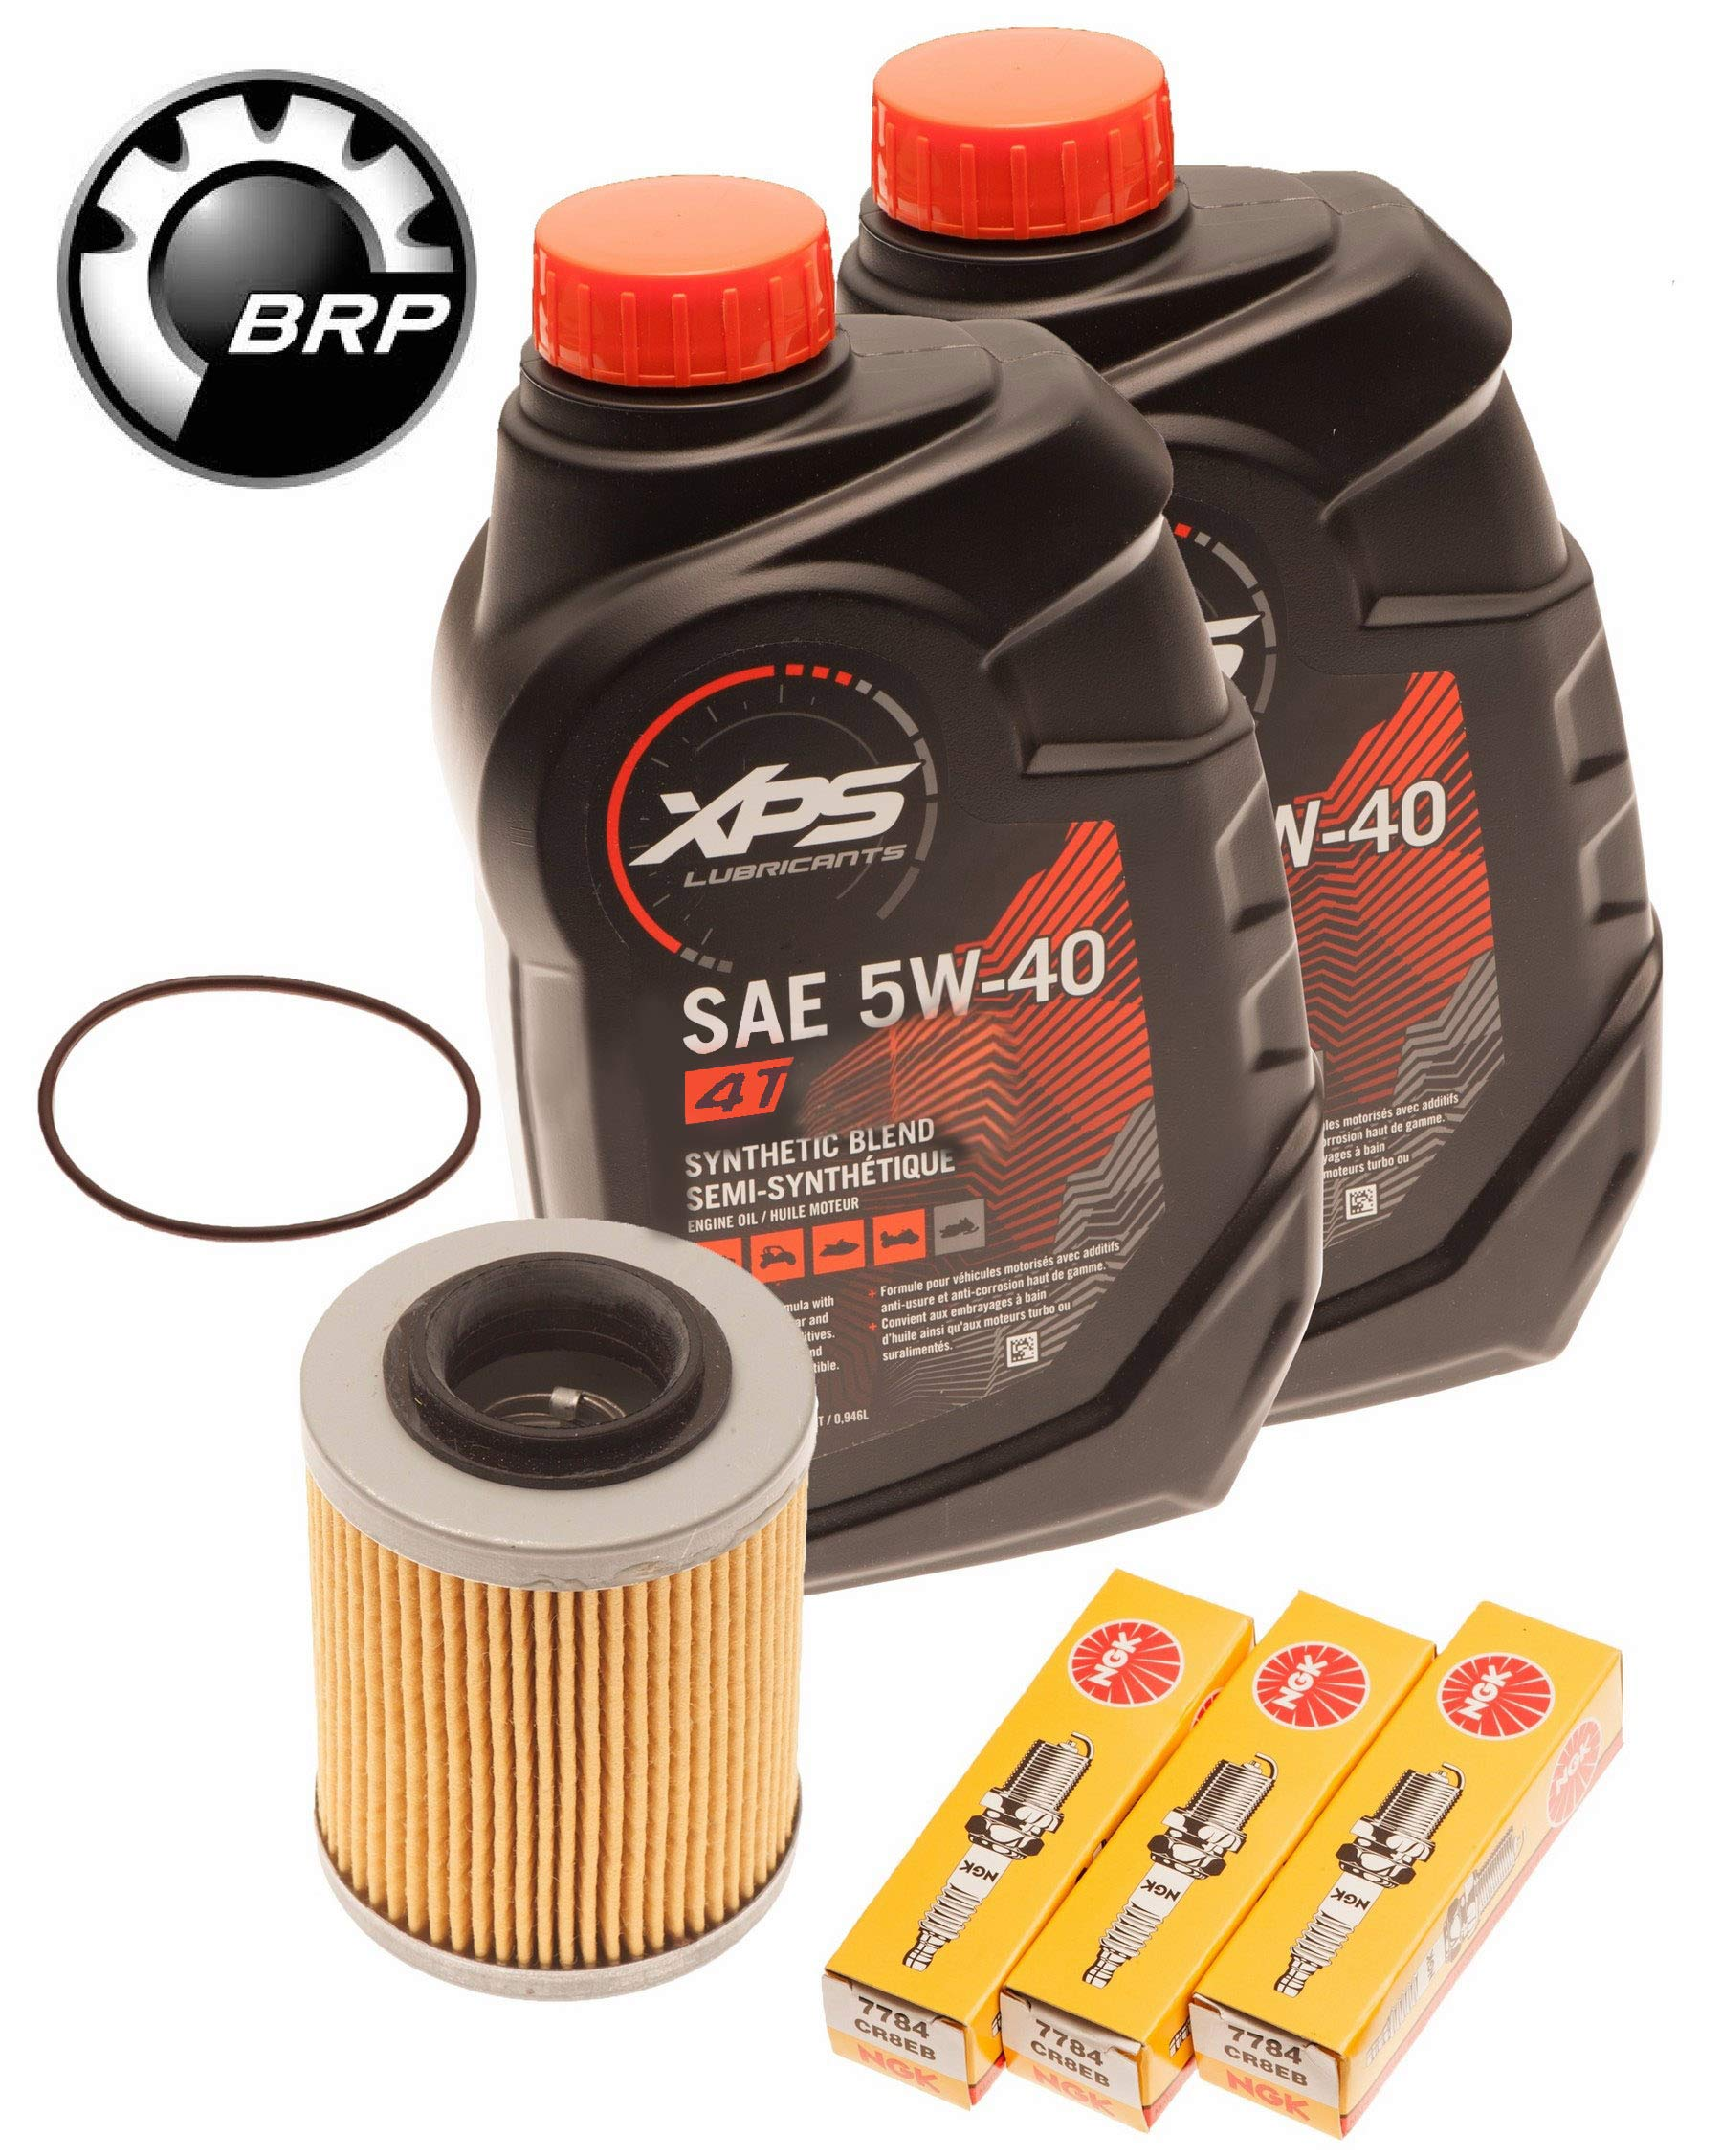 Sea Doo Spark 900 Oil Change Kit W/ Filter O-Ring & NGK Spark Plugs by BRP Sea Doo